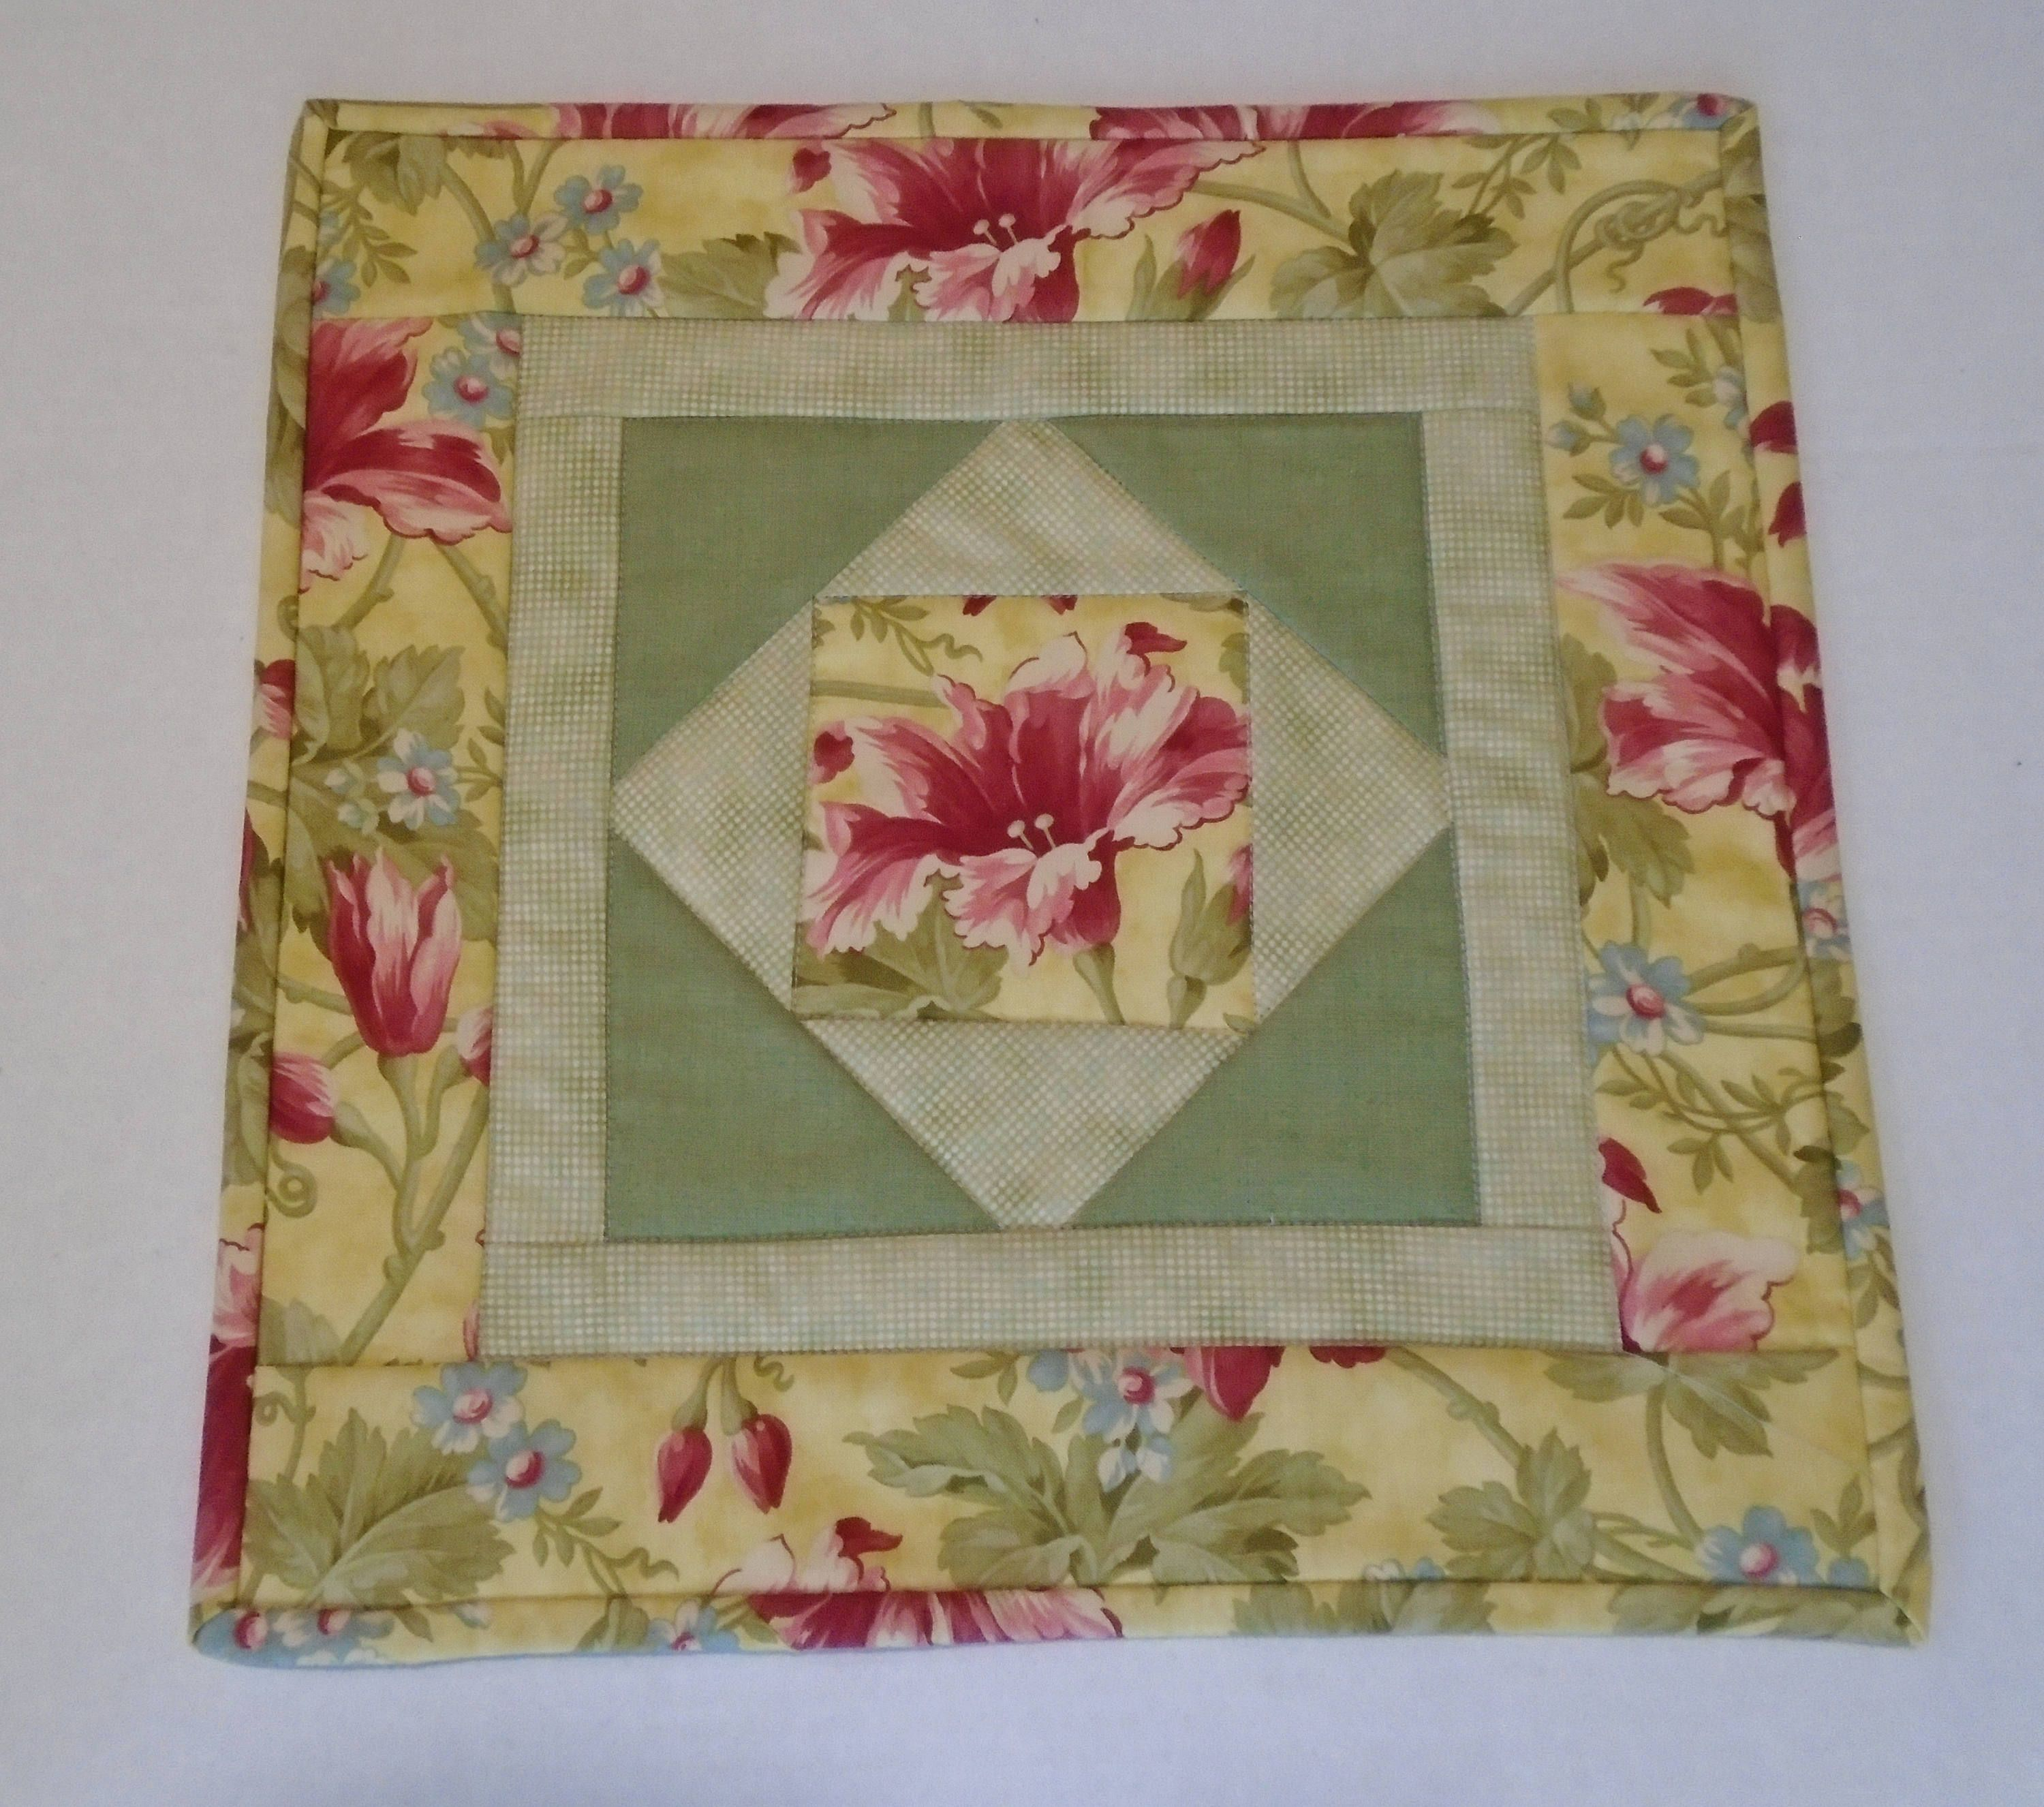 Floral Quilted Table Topper In Gold And Green, Quilted Table